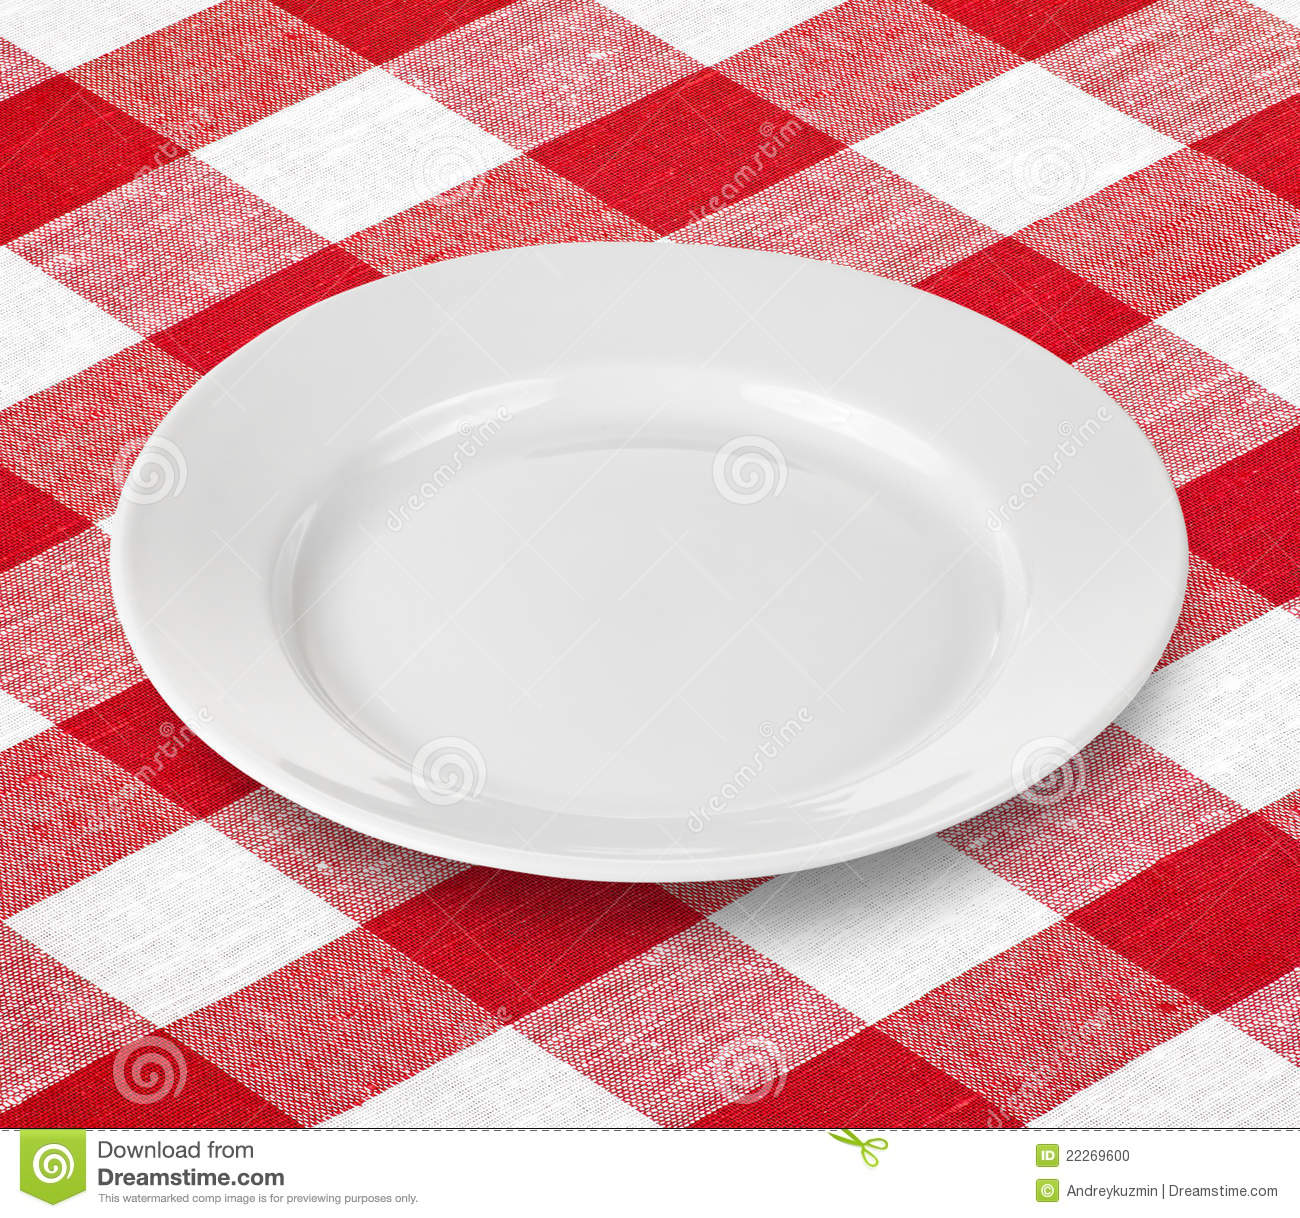 Stock Photo White Empty Plate Red Gingham Tablecloth Image22269600 on table setting clip art